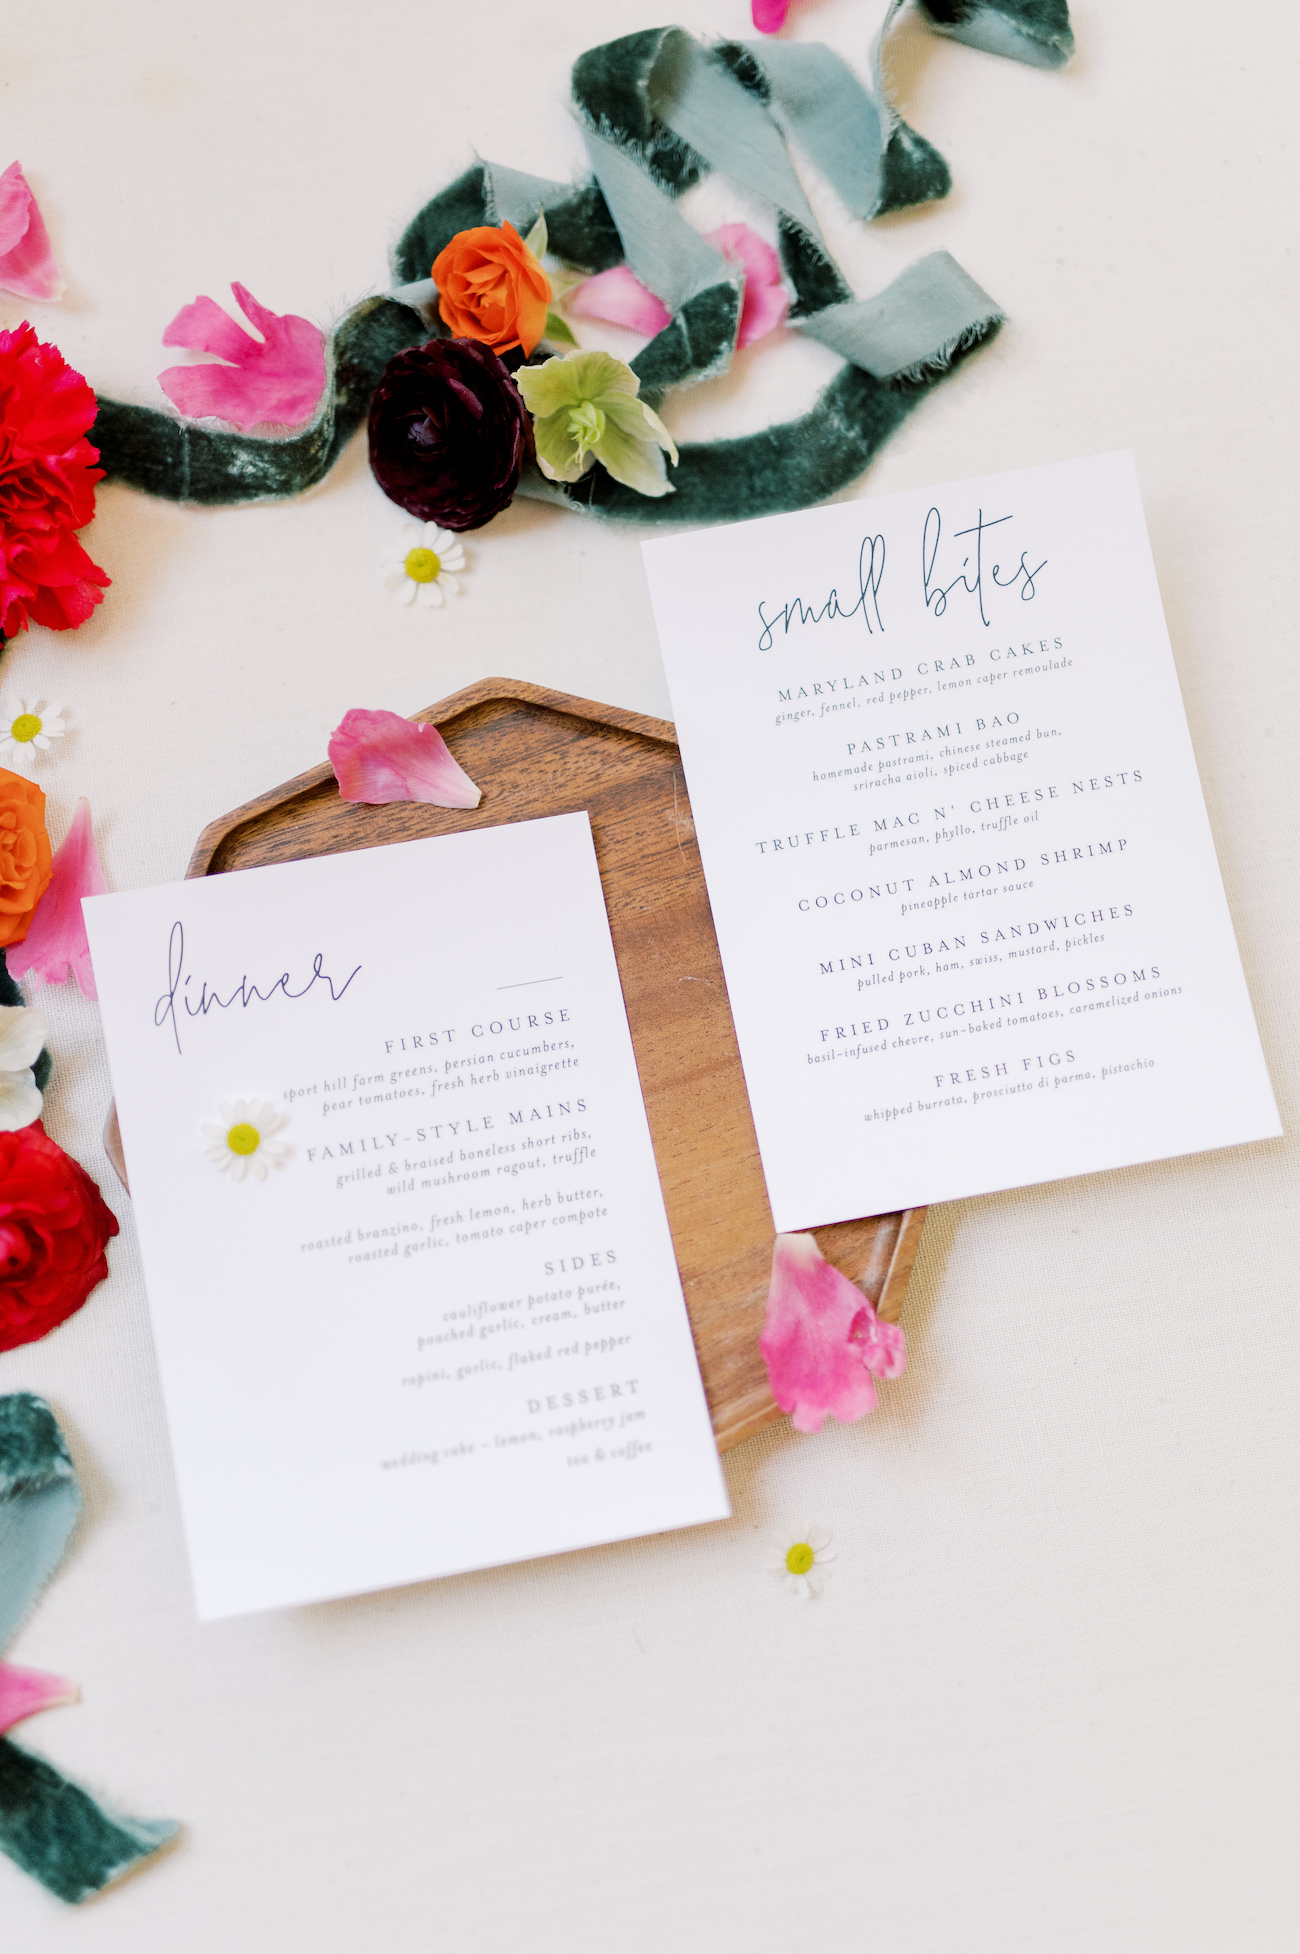 Menus for dinner and cocktail hour